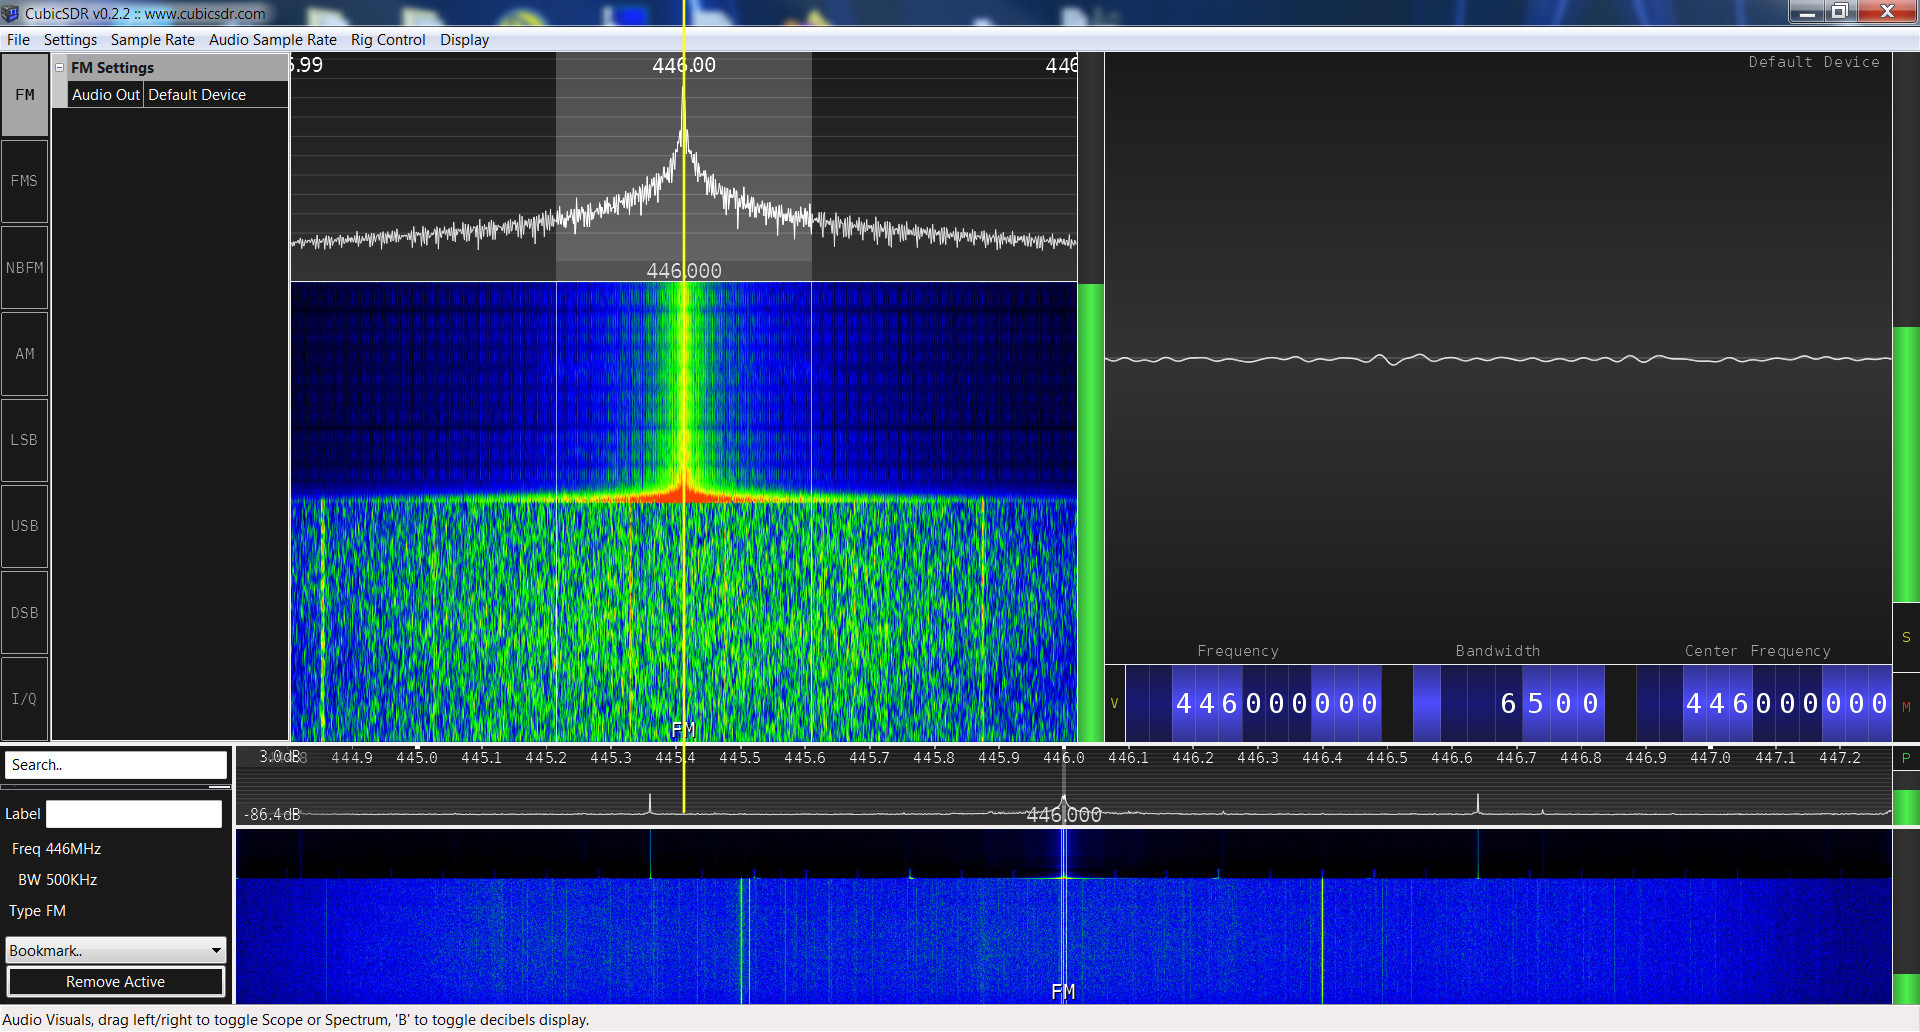 Kenwood TH-D74A SRD spectrum analysis